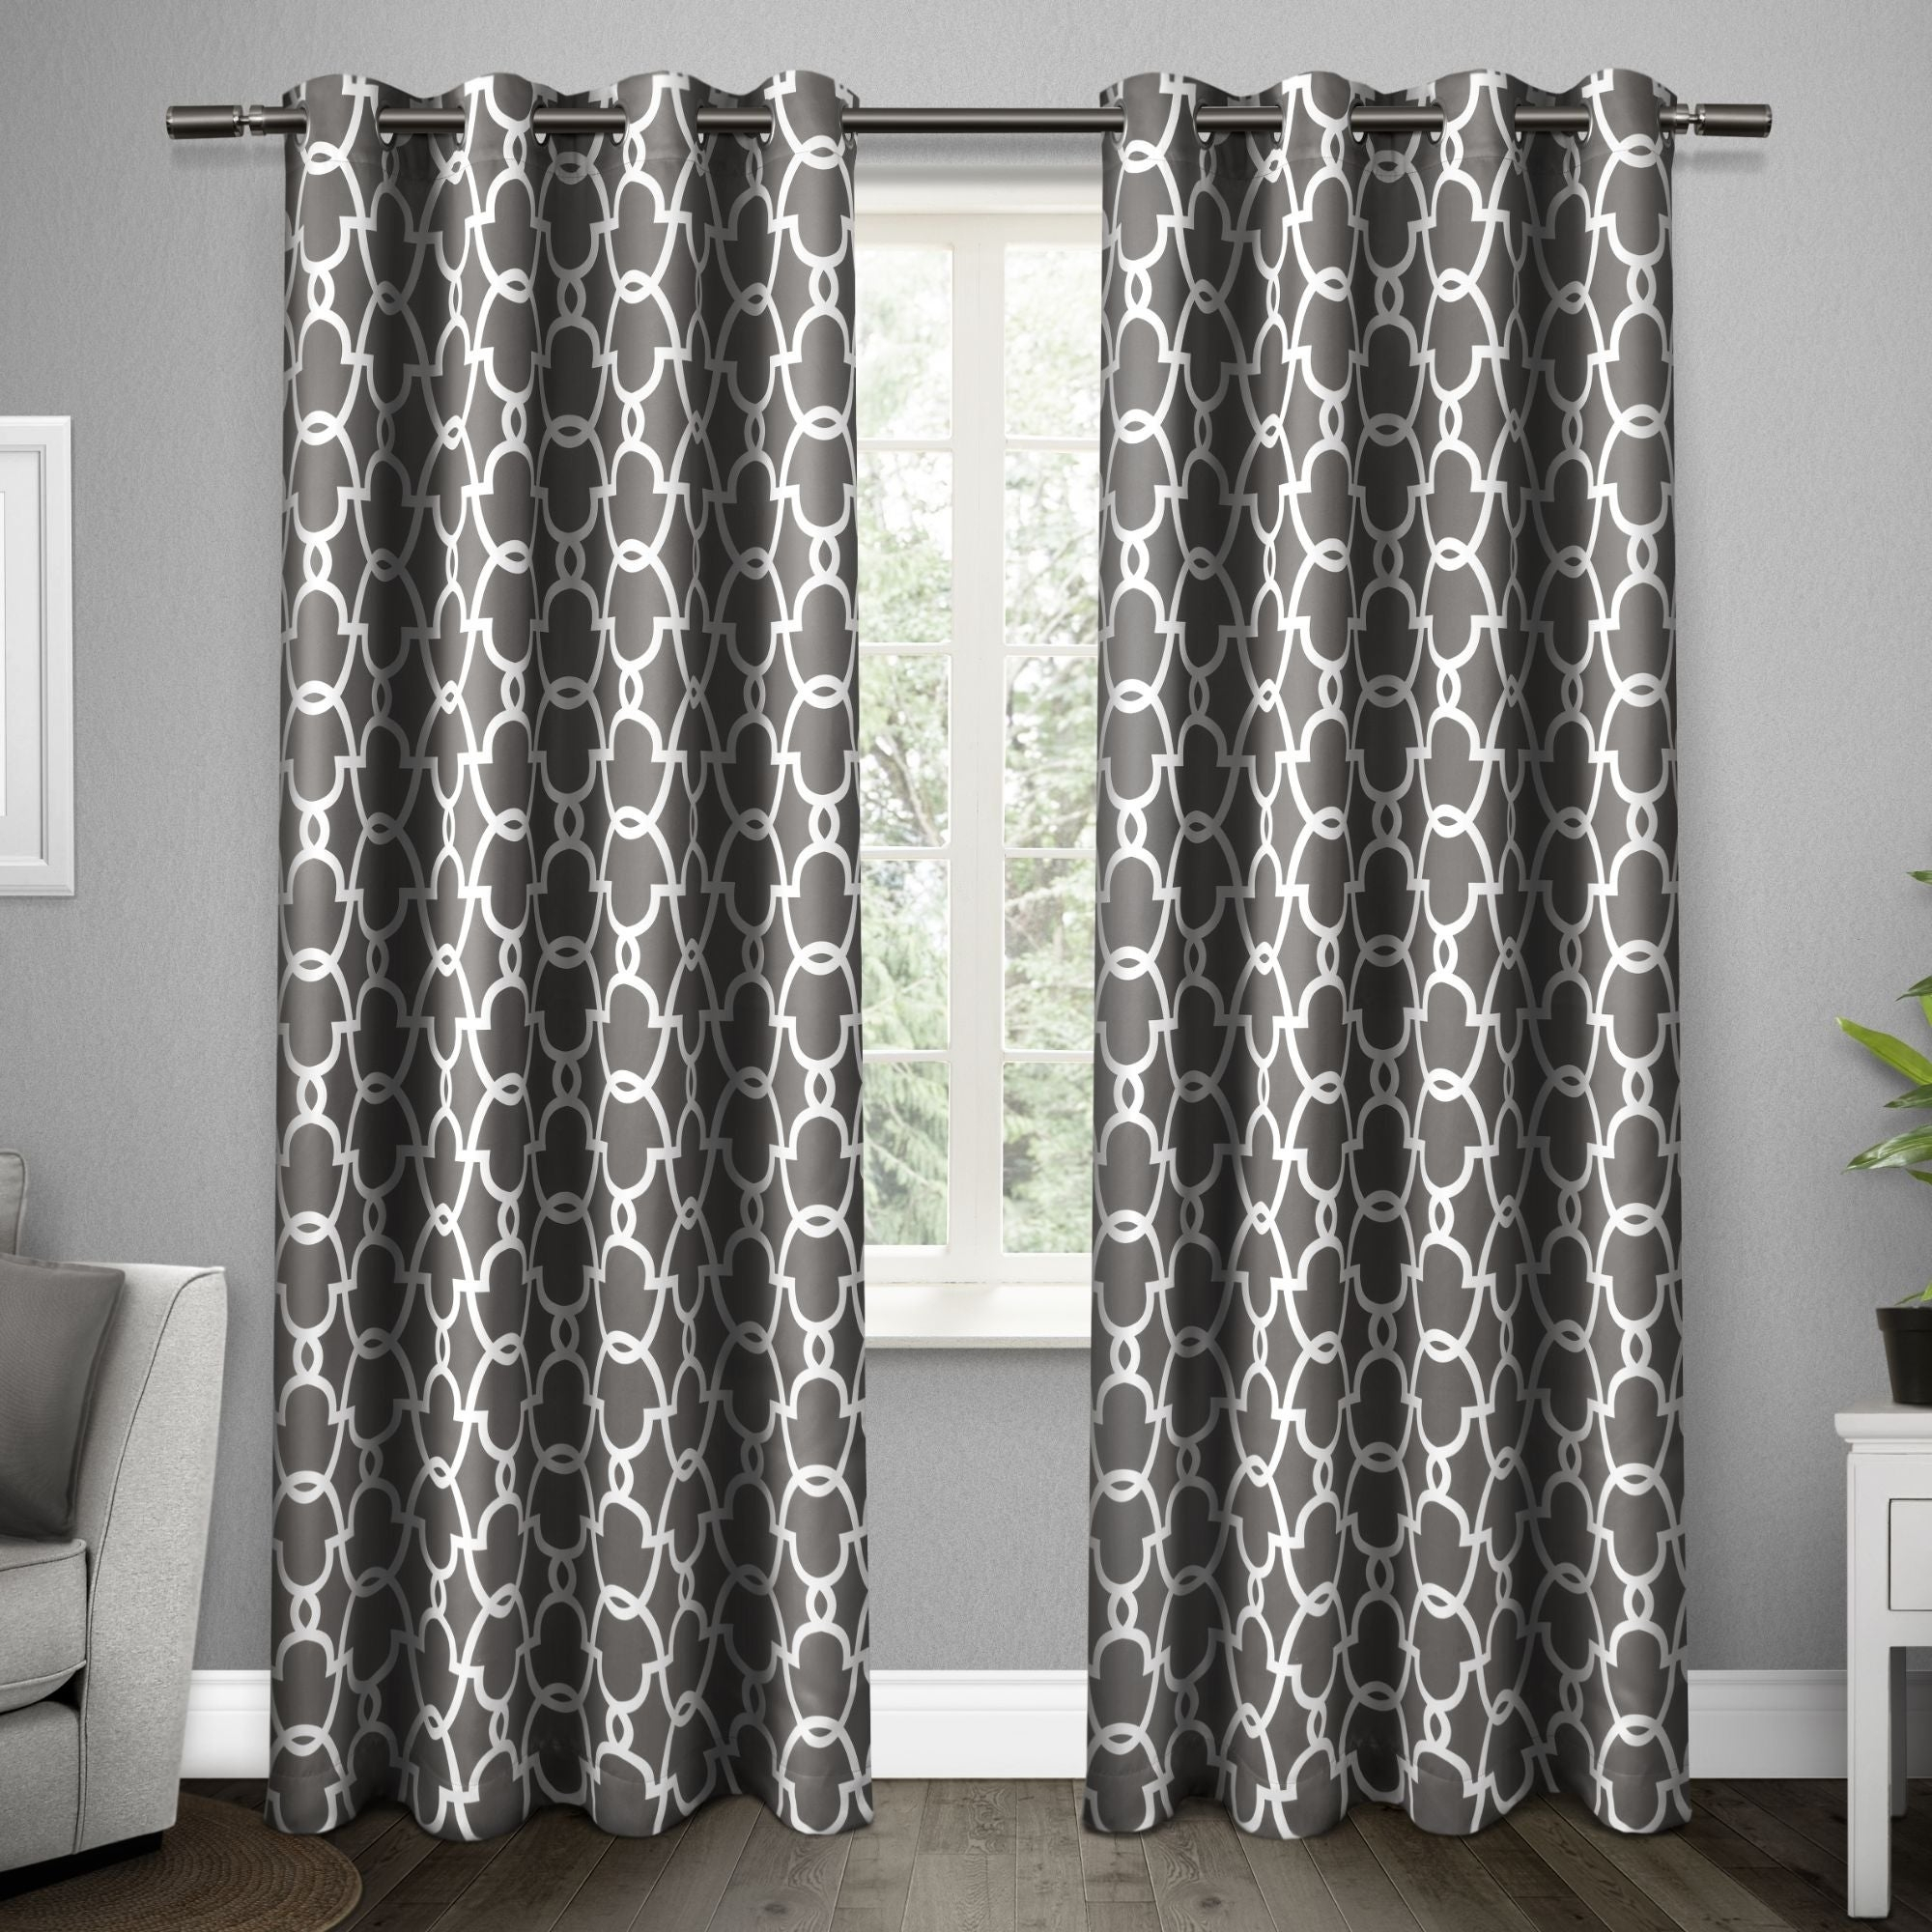 The Curated Nomad Vicksburg Thermal Woven Blackout Grommet Top Curtain Panel Pair Intended For The Curated Nomad Duane Blackout Curtain Panel Pairs (View 6 of 30)